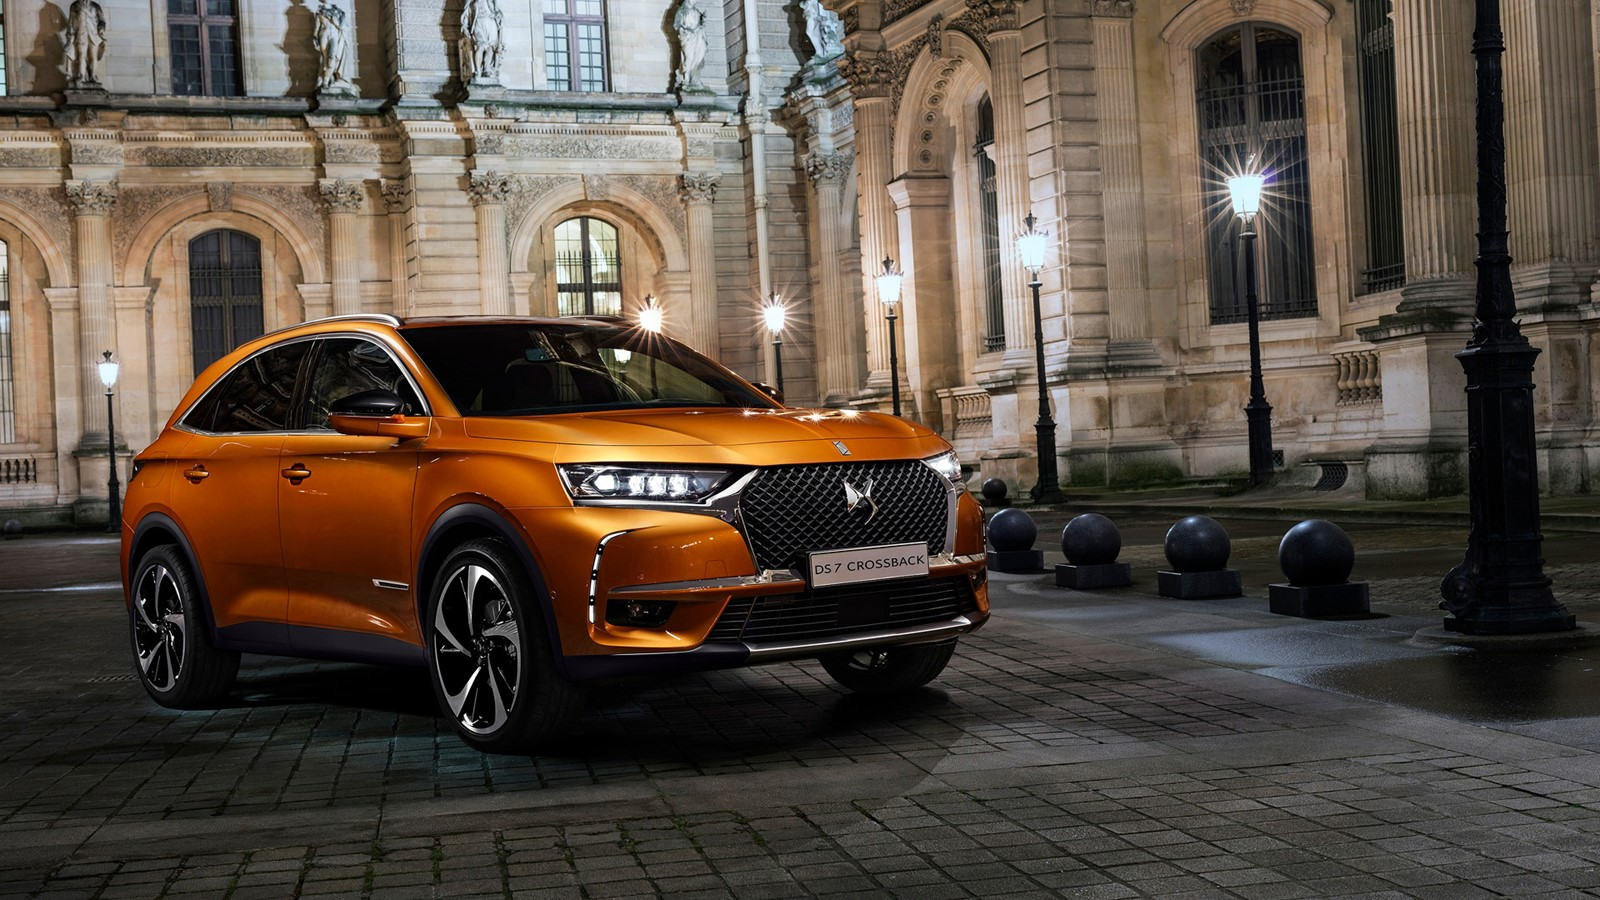 DS 7 Crossback — фотогалерея